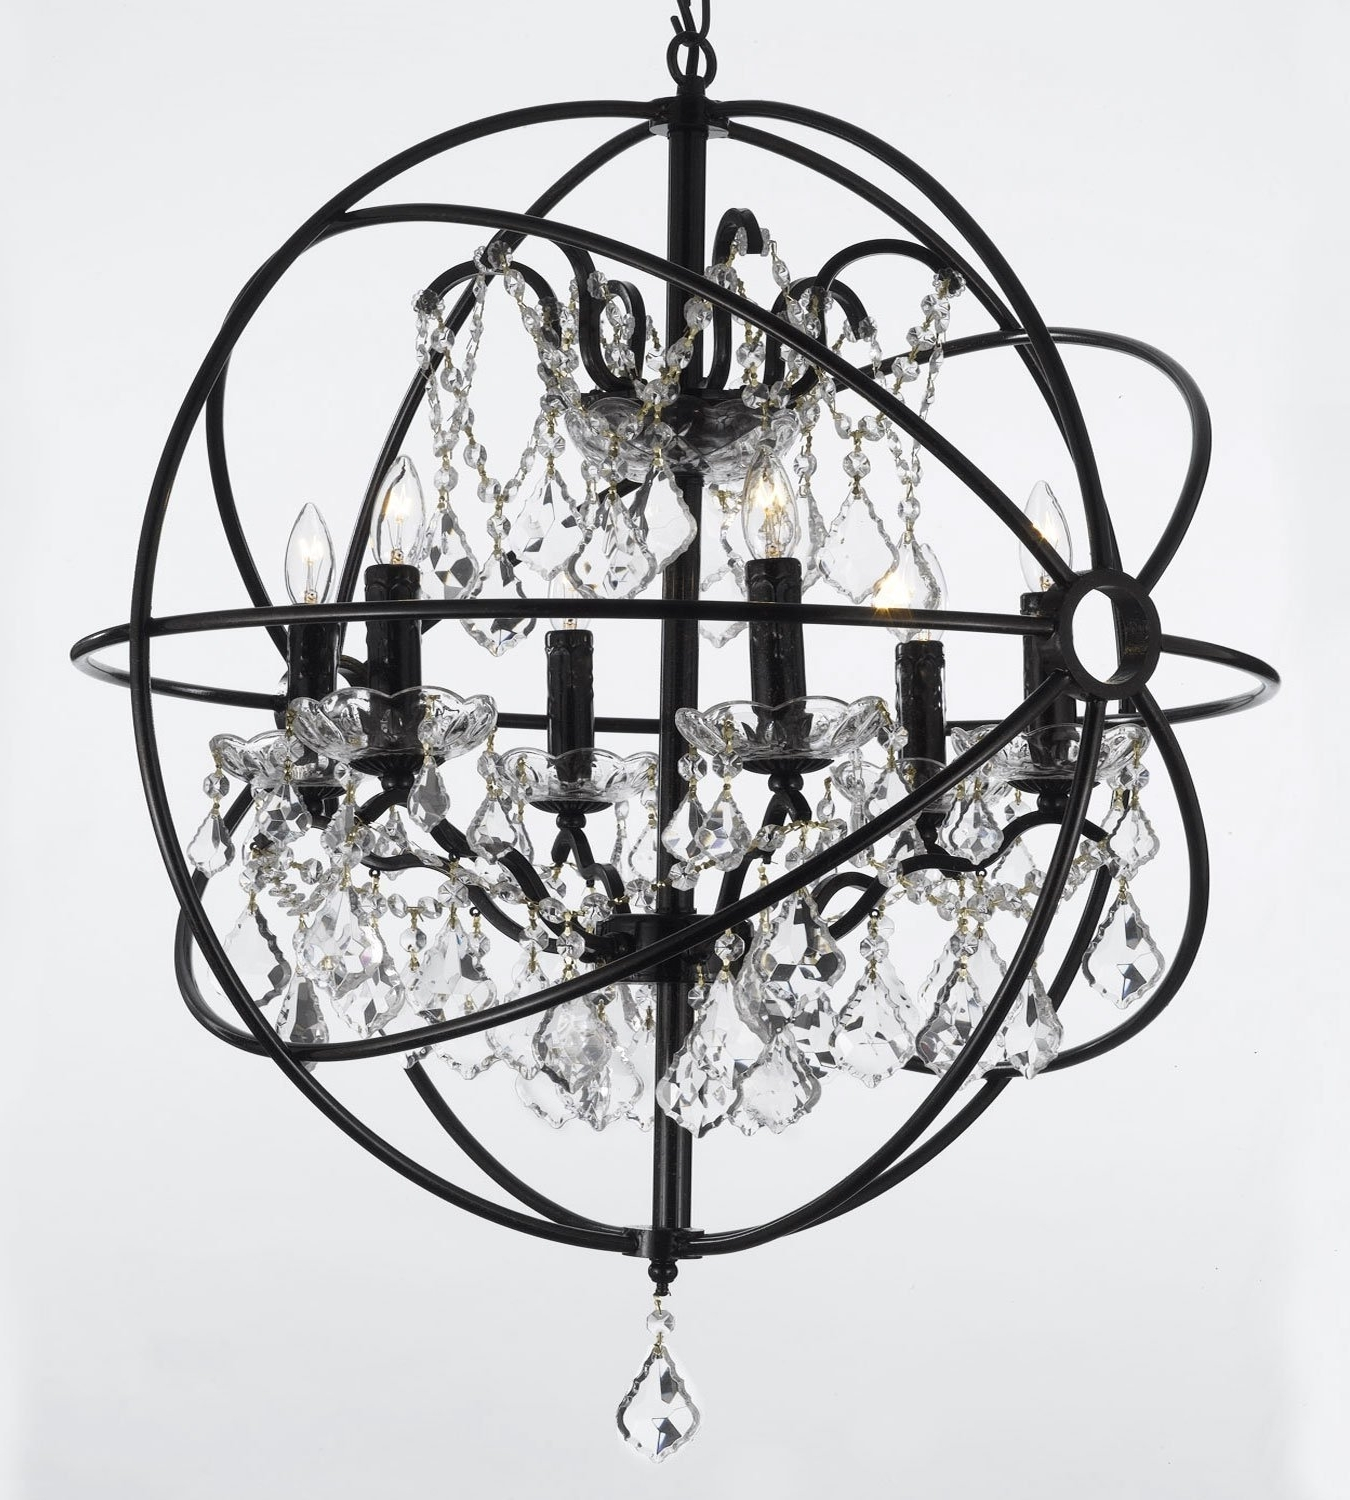 Modern Wrought Iron Chandeliers Inside Newest Foucault's Orb Wrought Iron Crystal Chandelier Lighting Country (View 10 of 15)